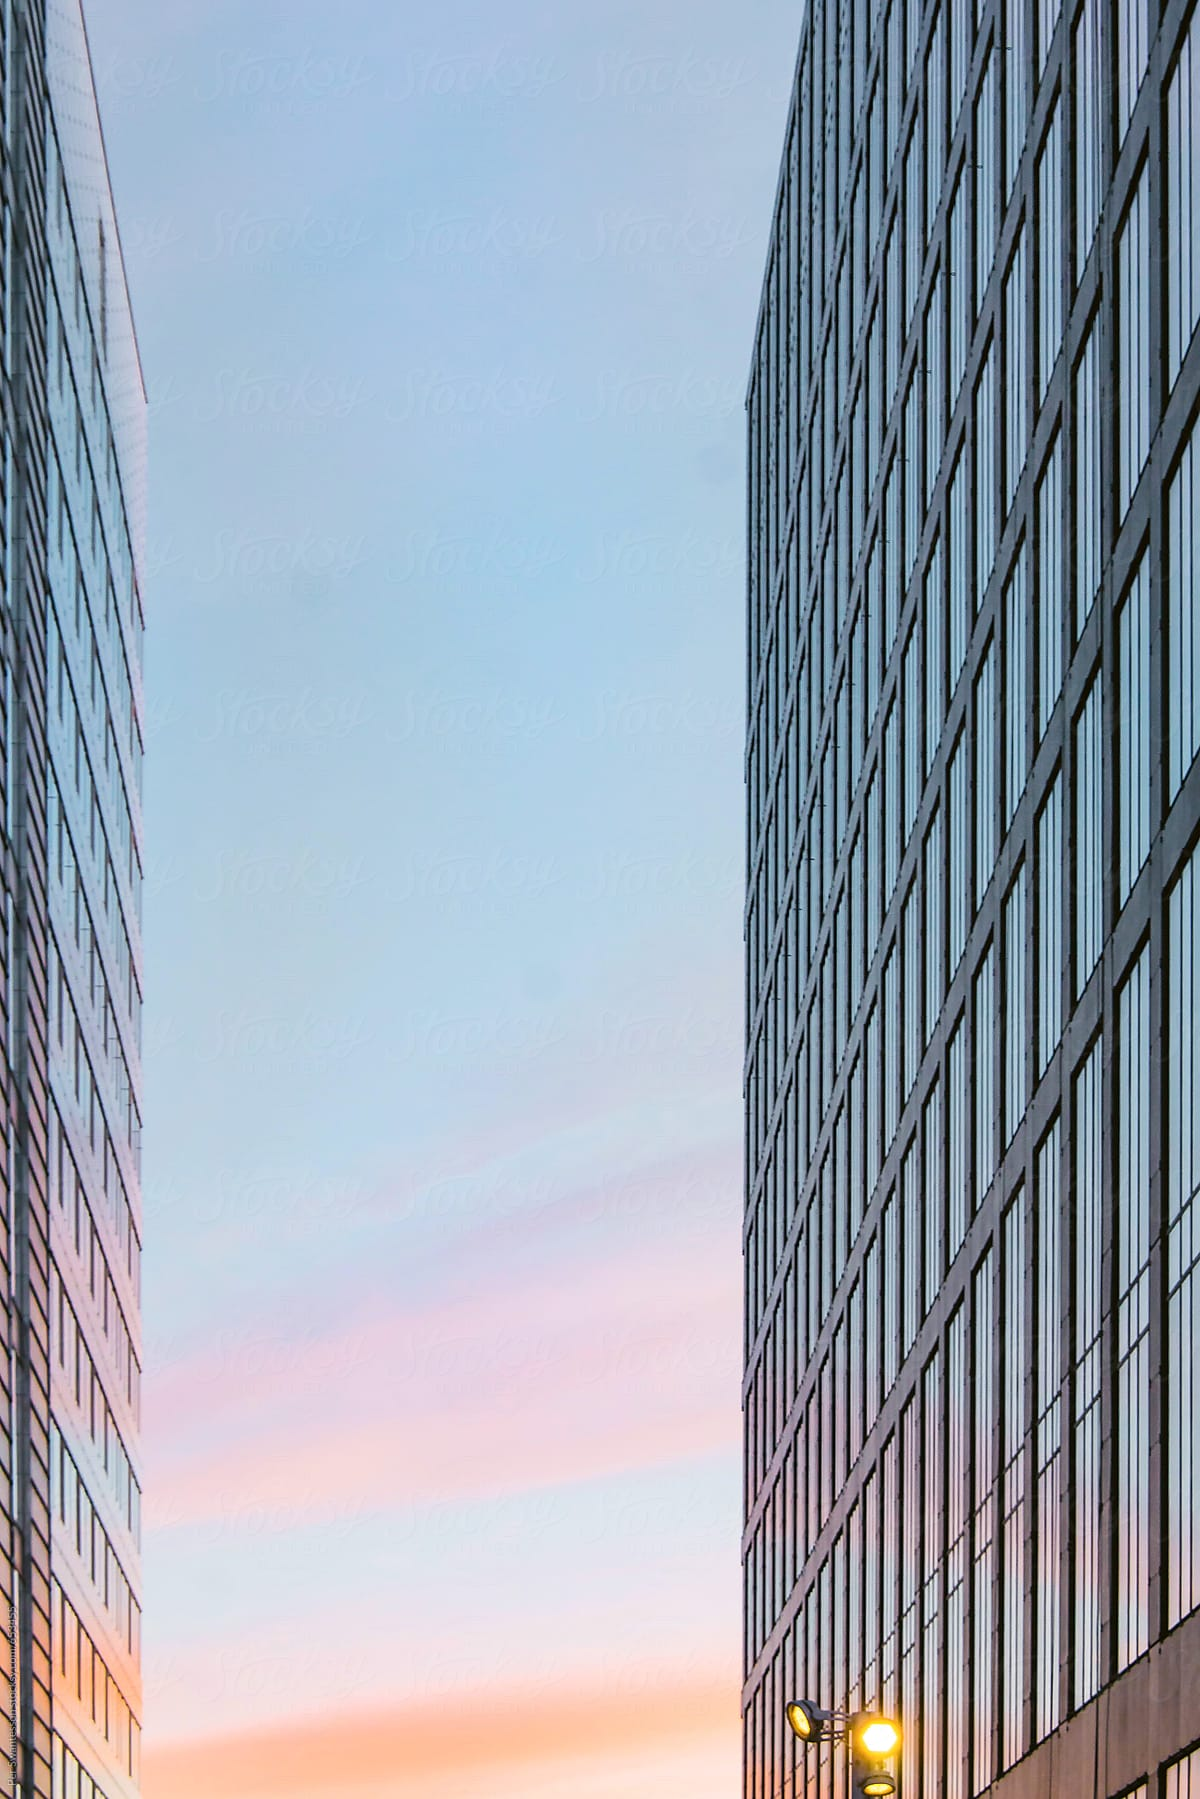 Background of two modern office buildings by Per Swantesson - Stocksy United